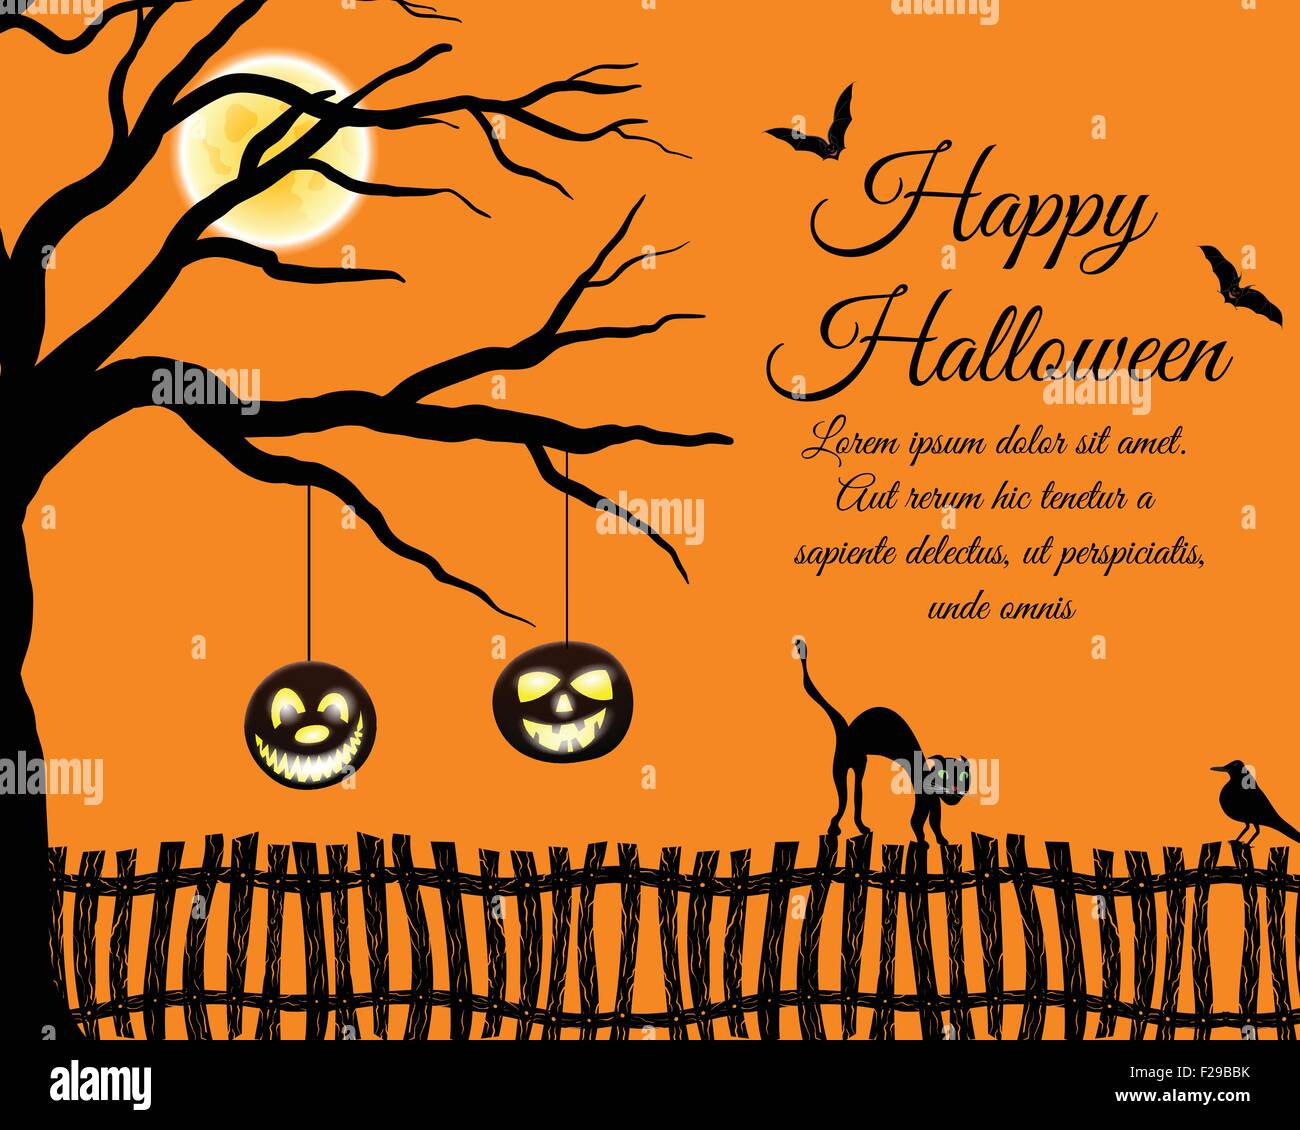 Ordinaire Happy Halloween Greeting Card. Elegant Design With Tree, Bats Stock Vector  Ar..